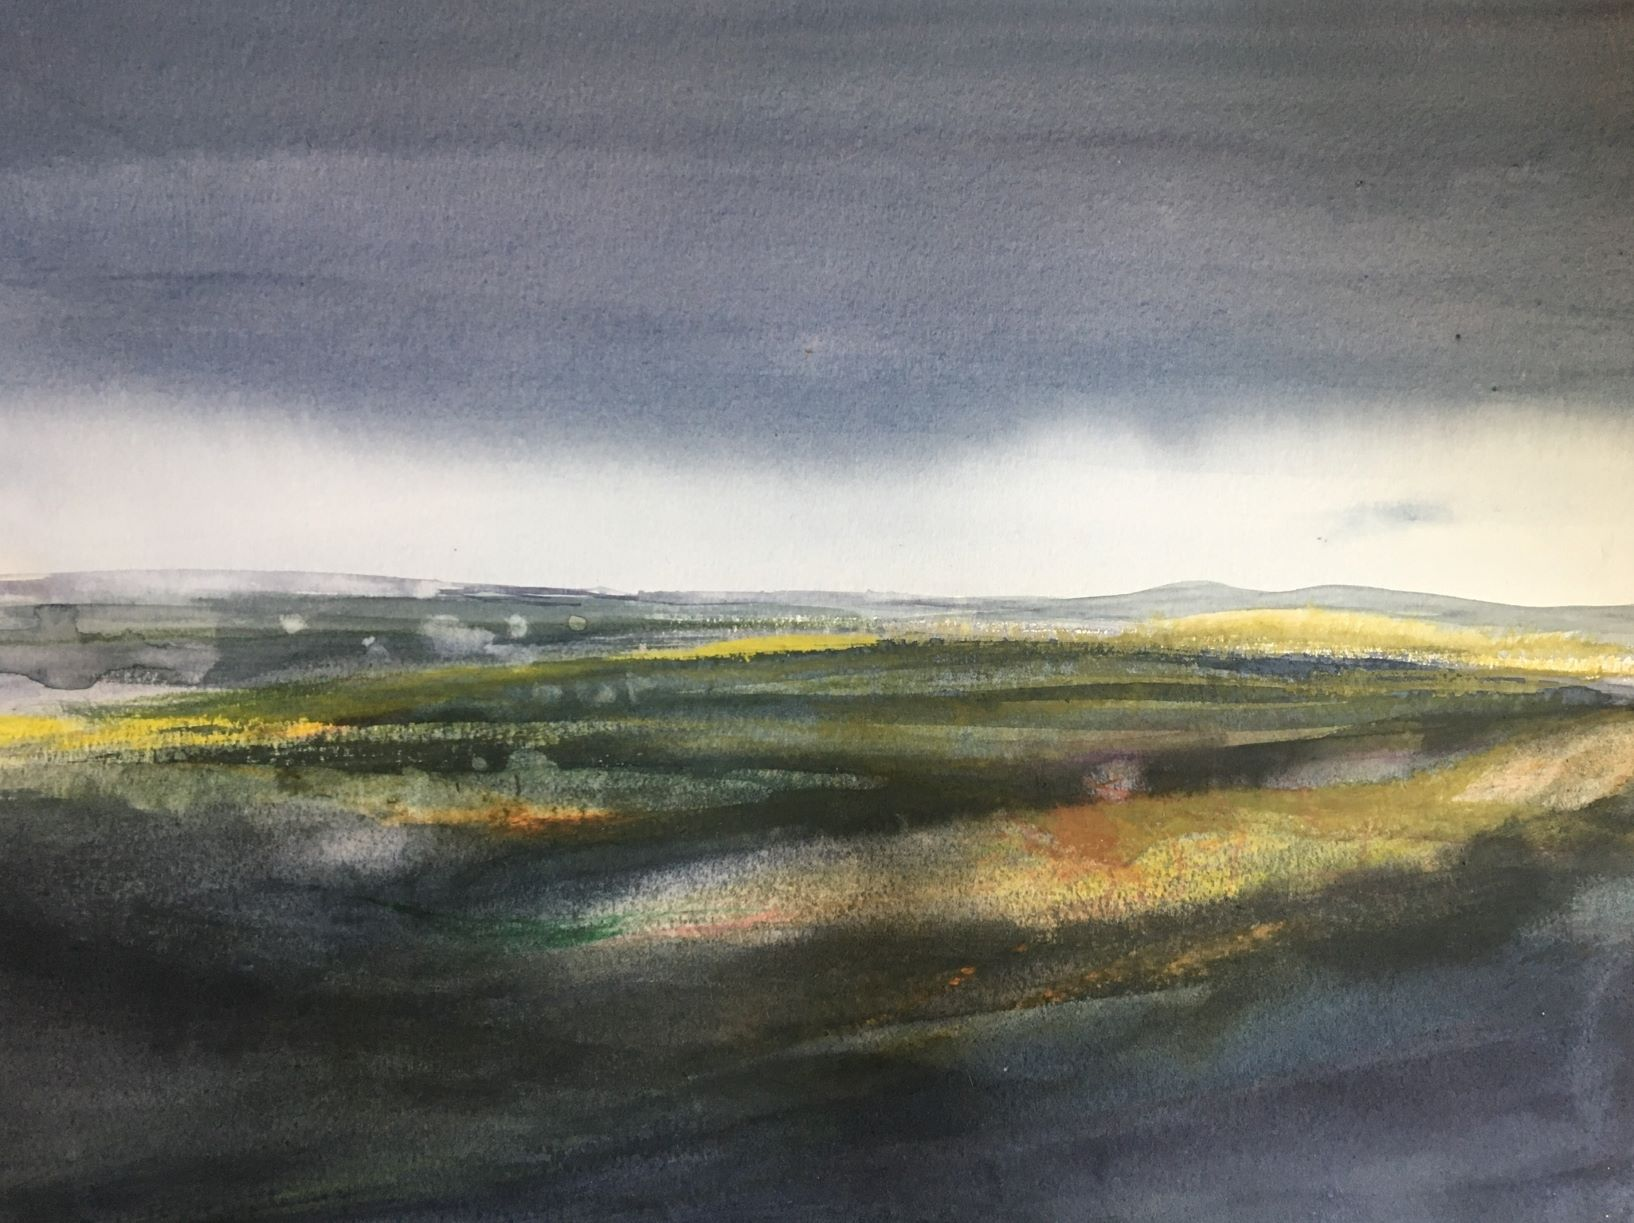 Watercolour landscape painting by Scottish artist Gemma Petrie